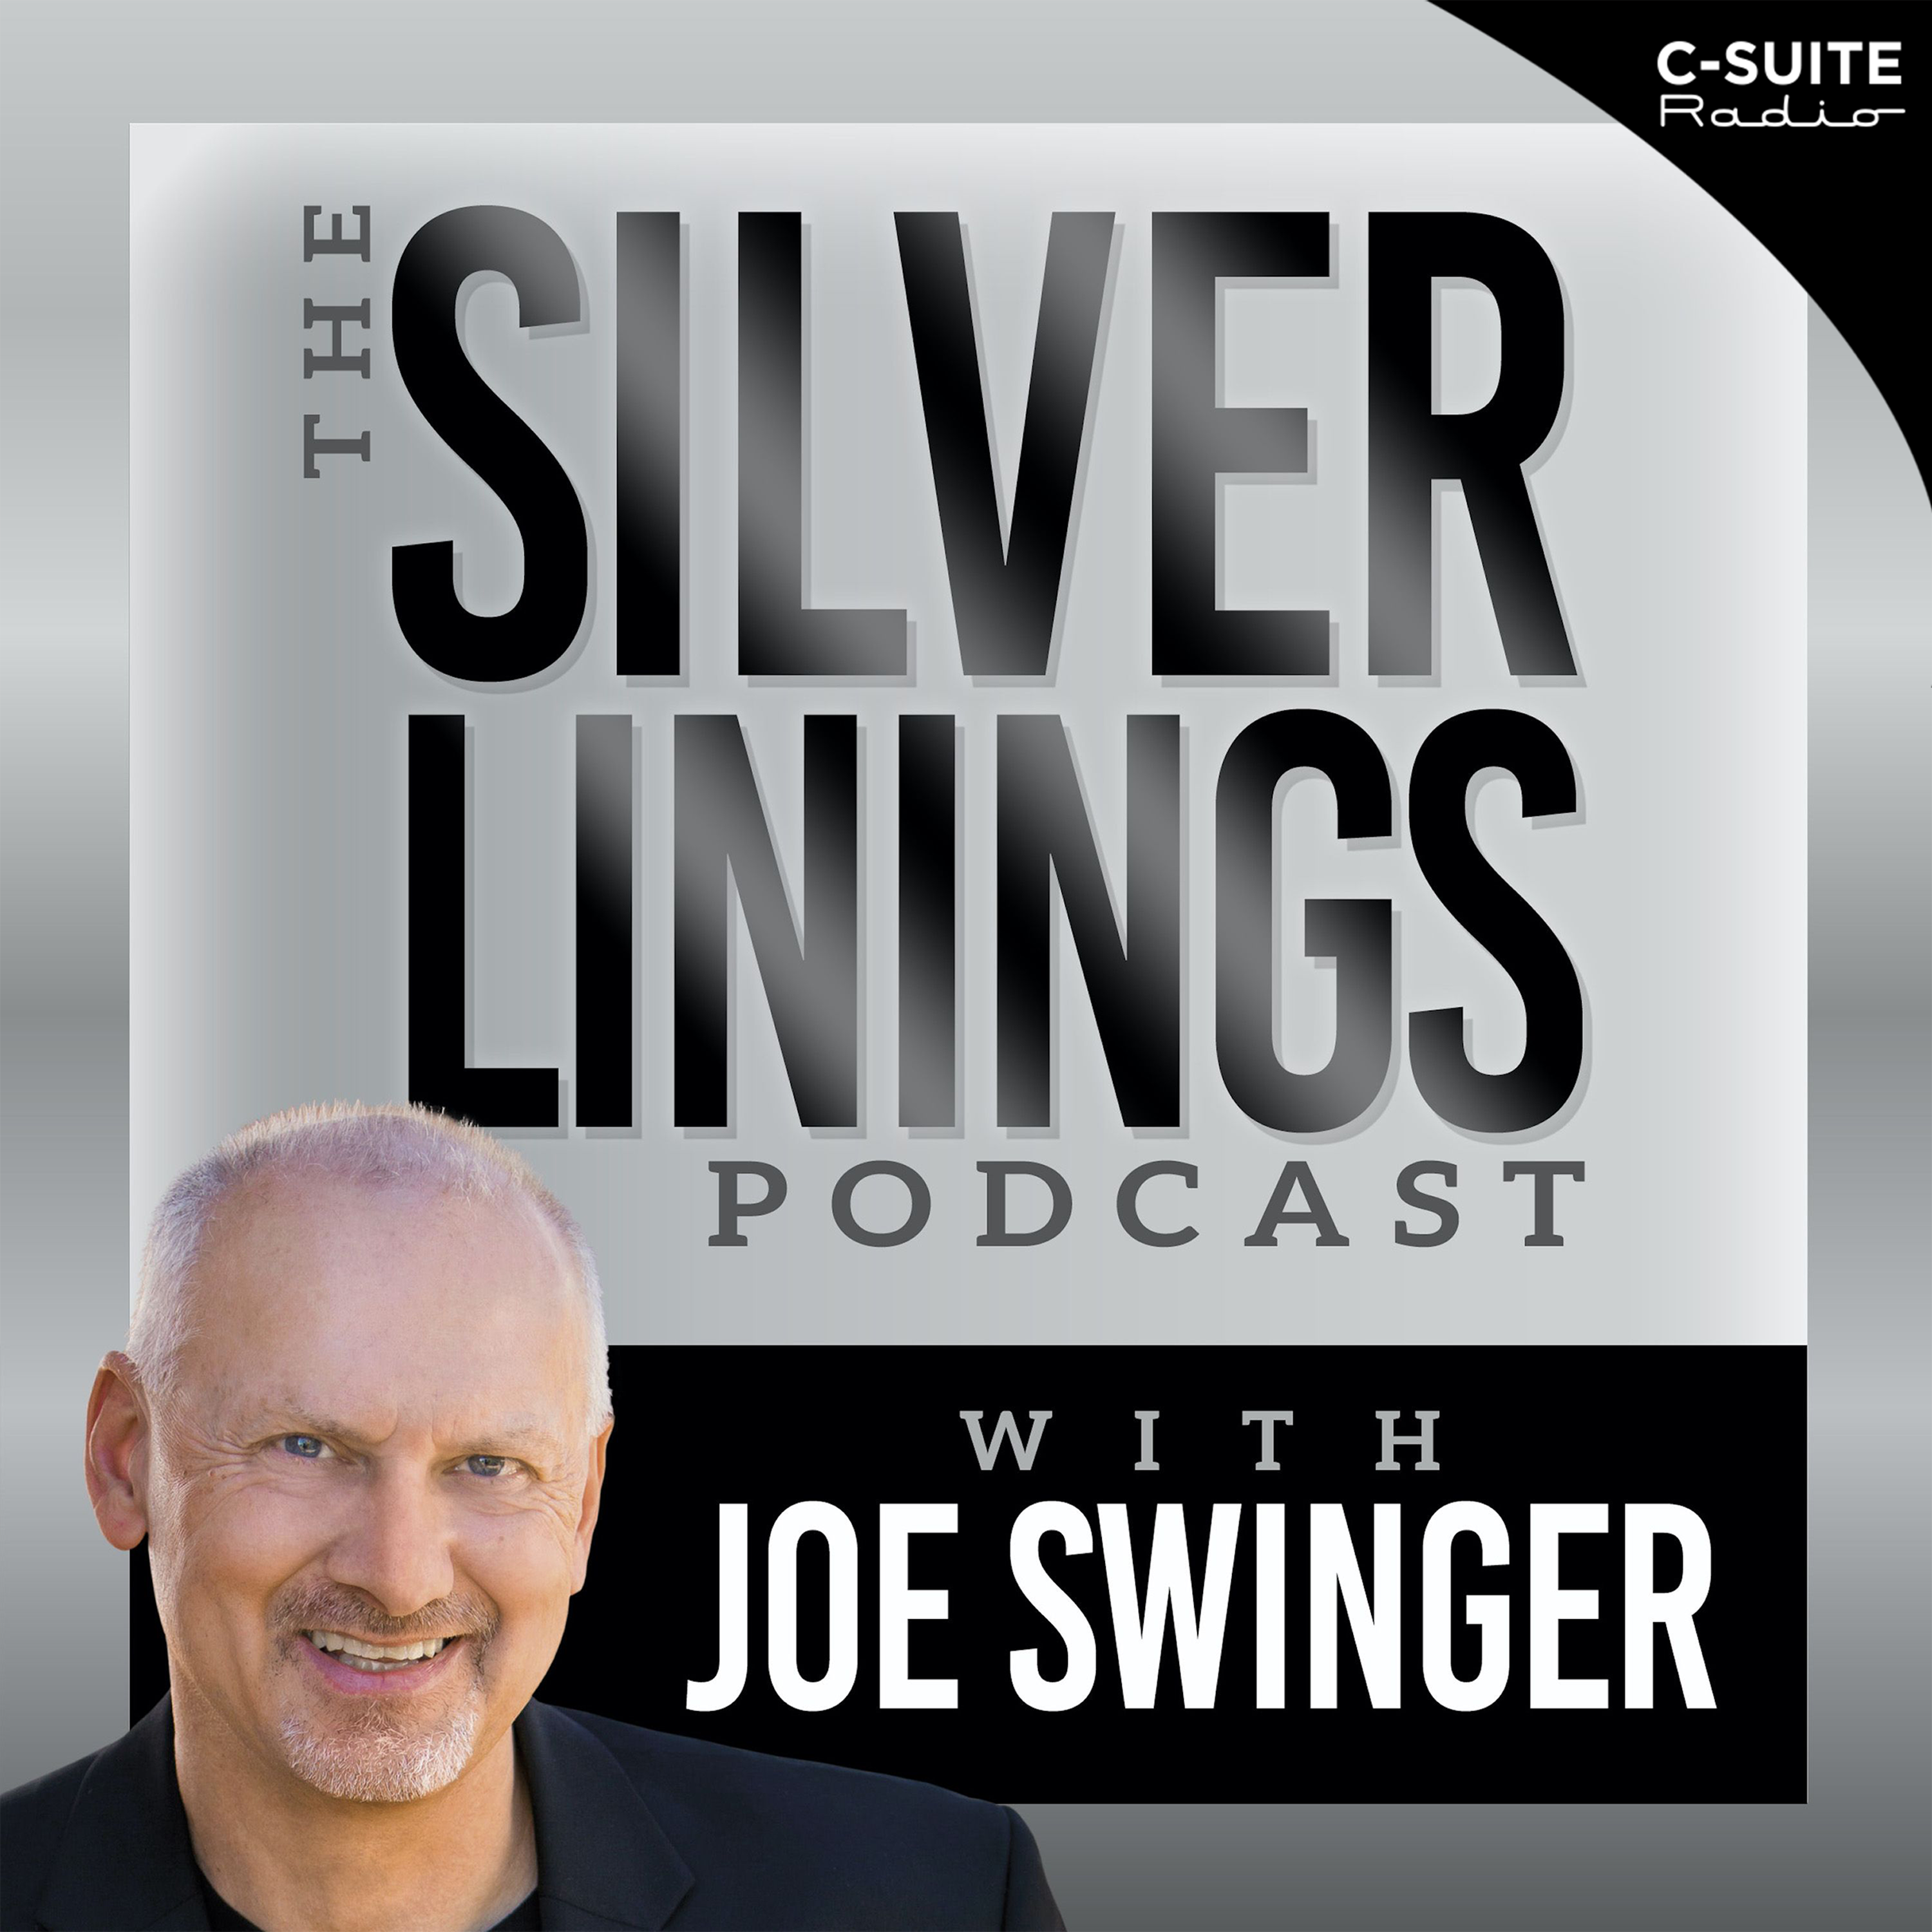 The Silver Linings Podcast